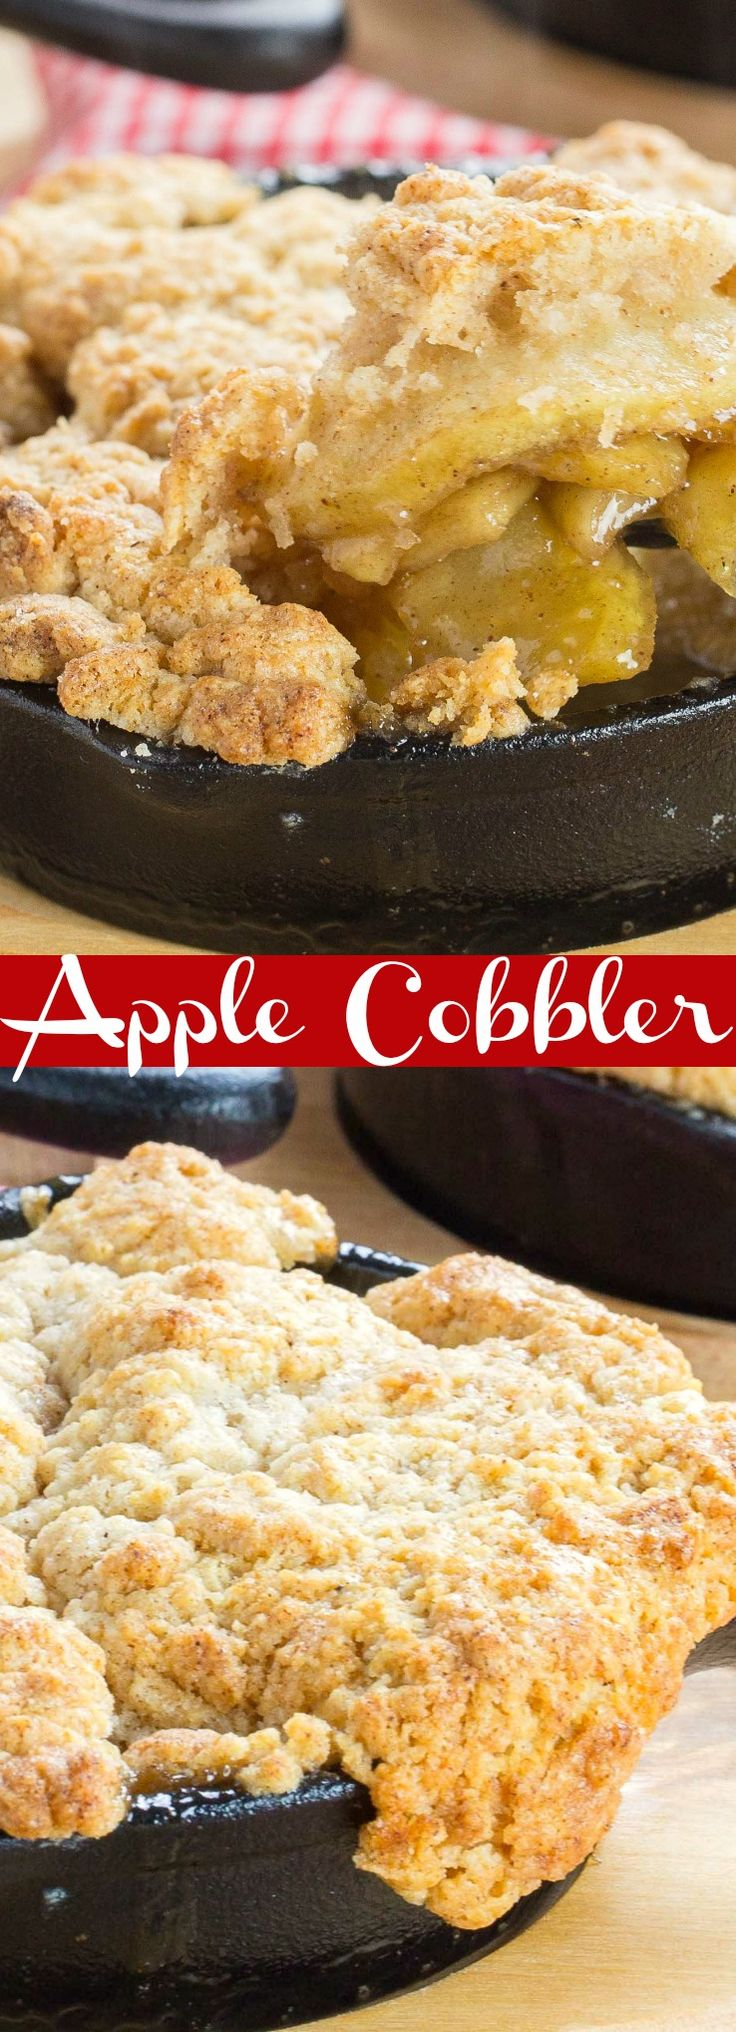 This Apple Cobbler recipe has a rich, savoury apple filling topped with a crisp, crunchy biscuit crust.